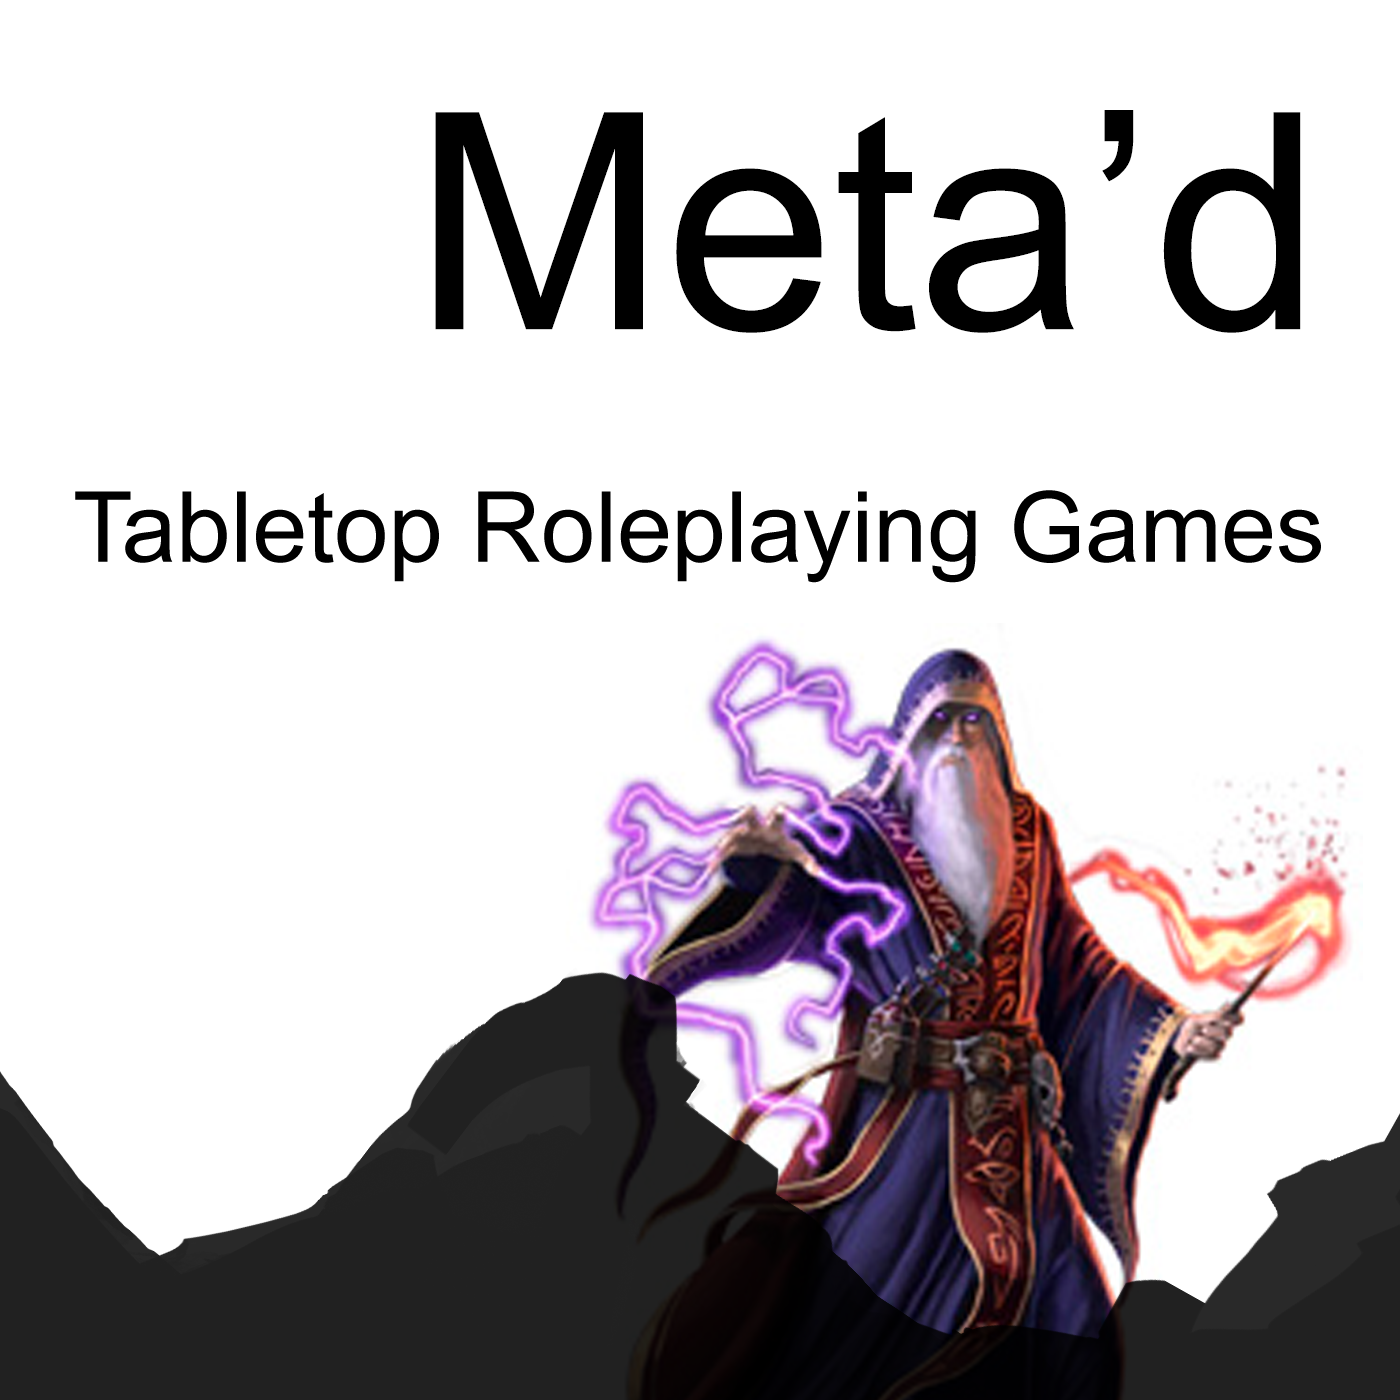 Tabletop Roleplaying Games